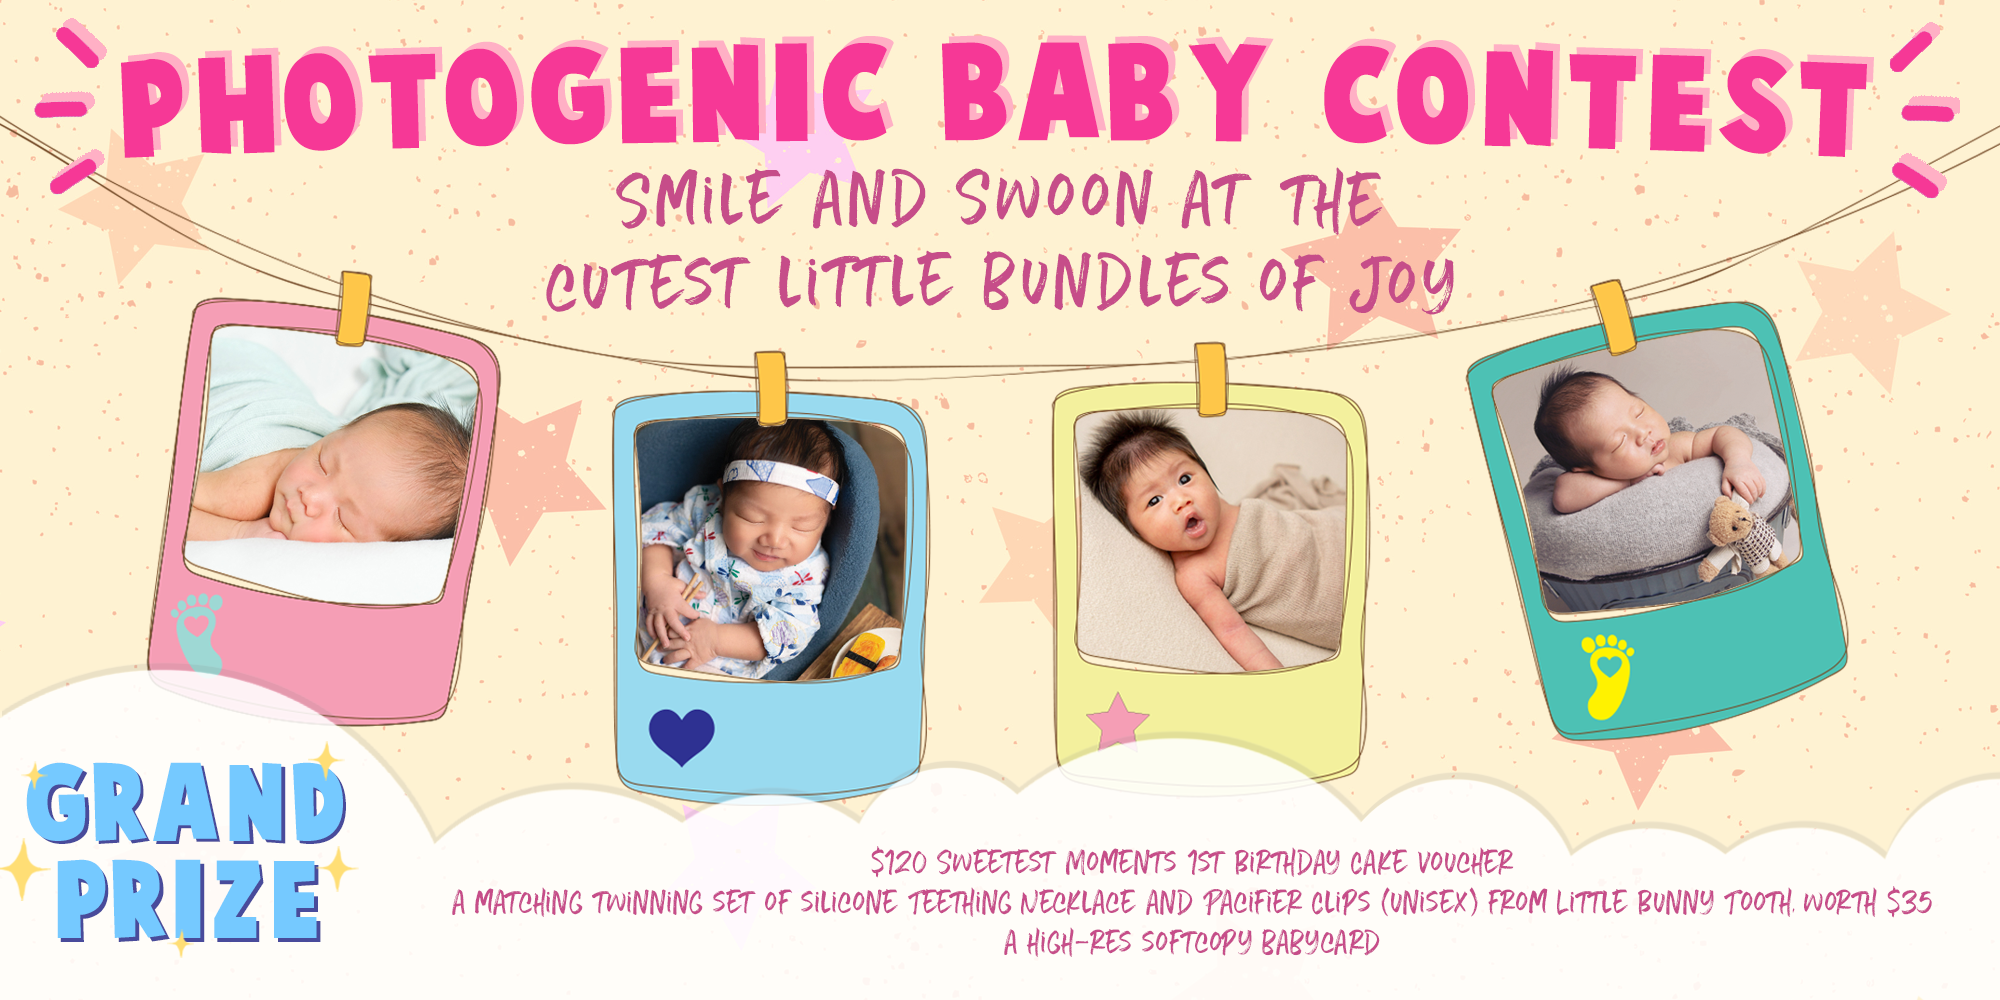 Photogenic Baby Contest 2019 - 2020